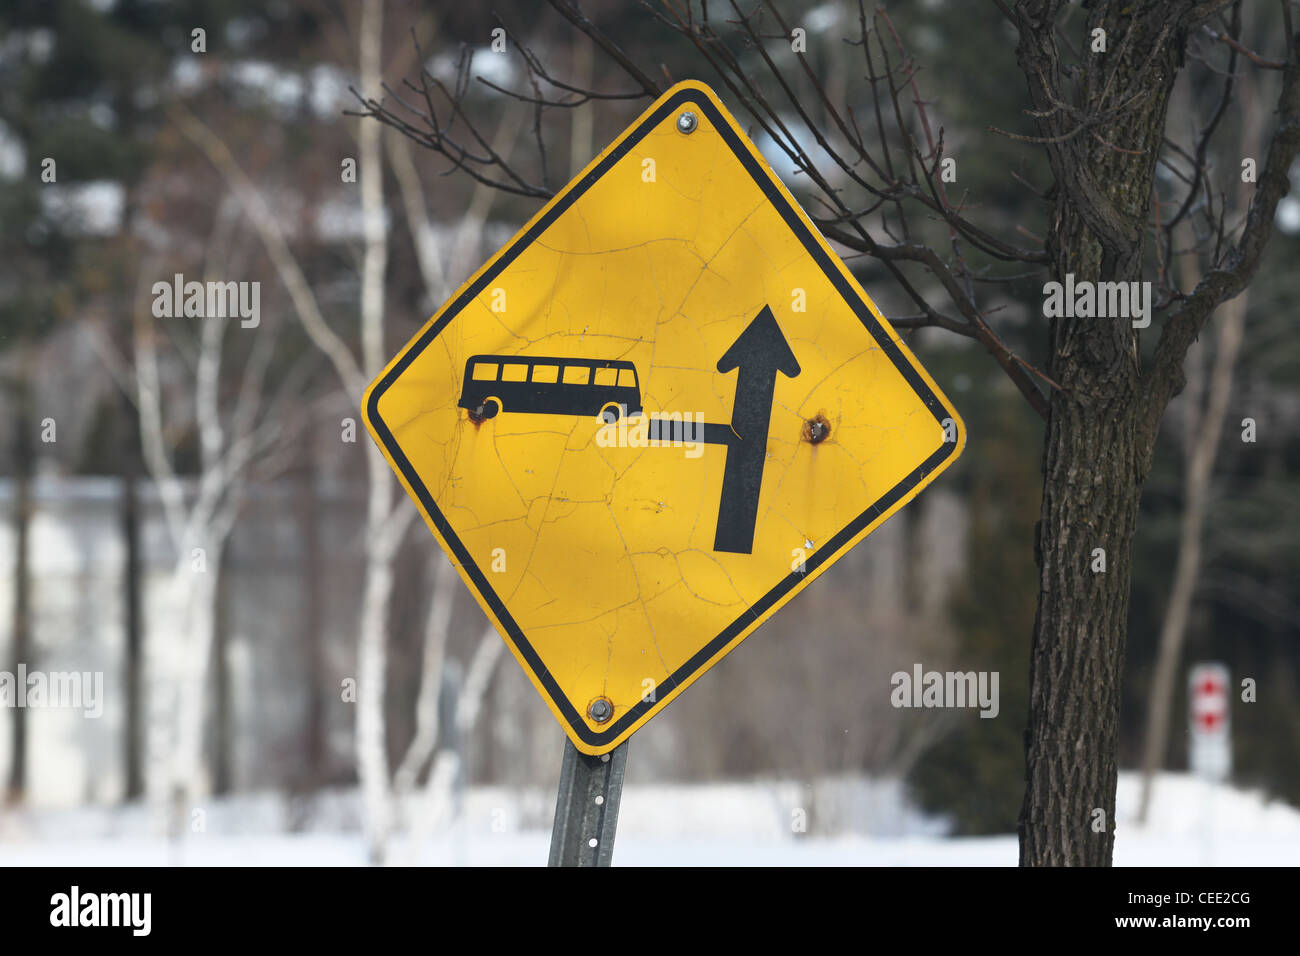 Yellow and black road sign directing bus traffic - Stock Image